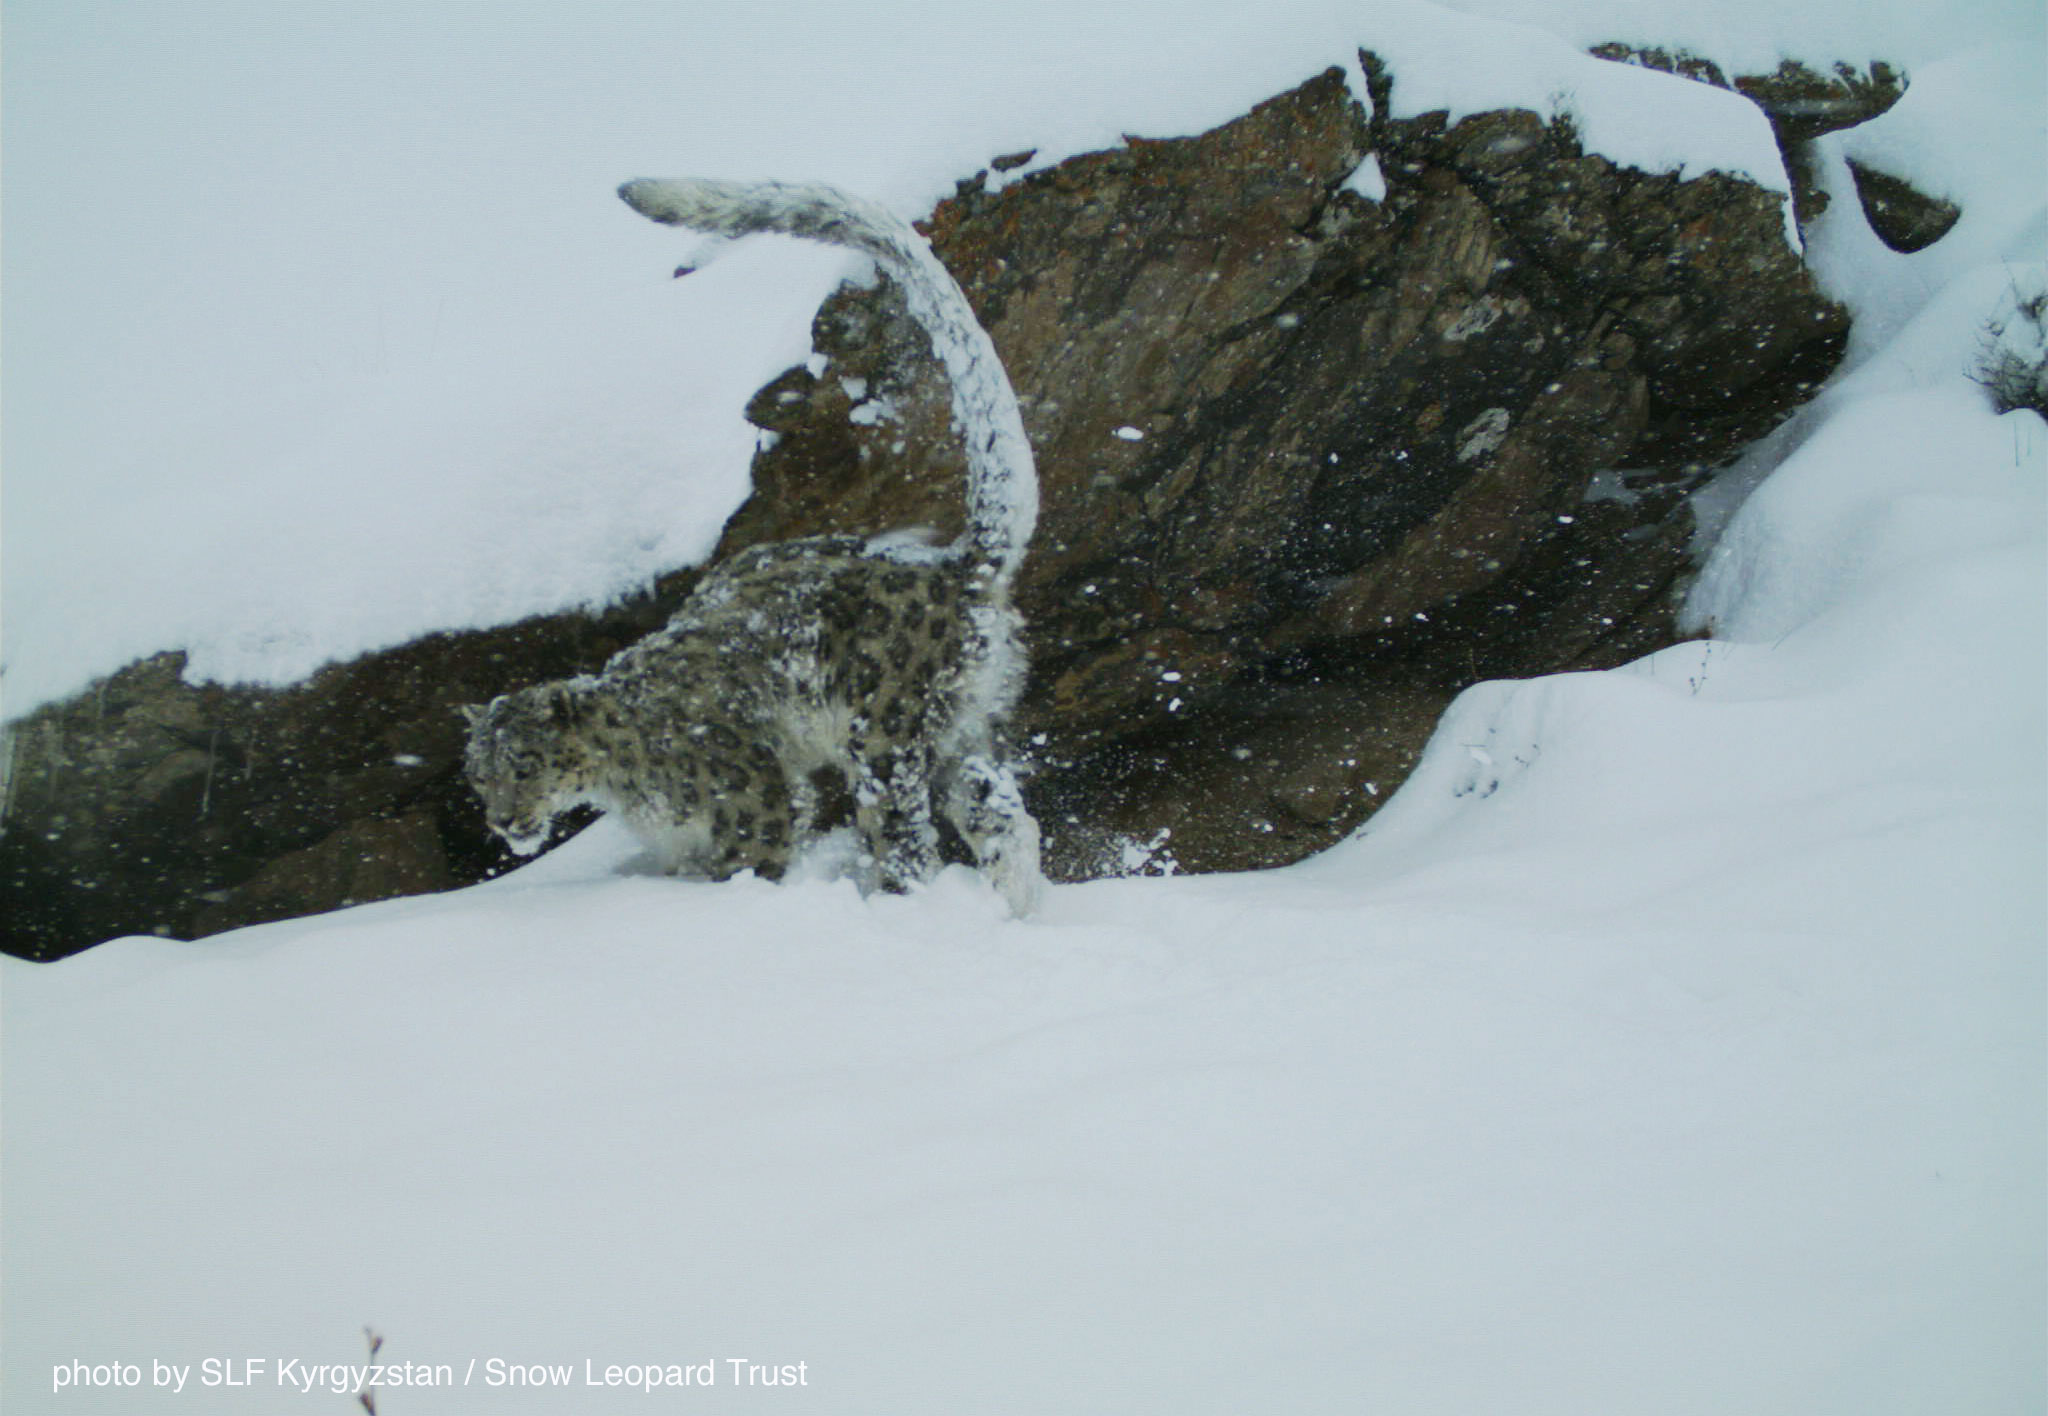 A snow leopard in Kyrgyzstan's Sarychat Ertash reserve is marking its territory. Photo: SLF Kyrgyzstan / SLT